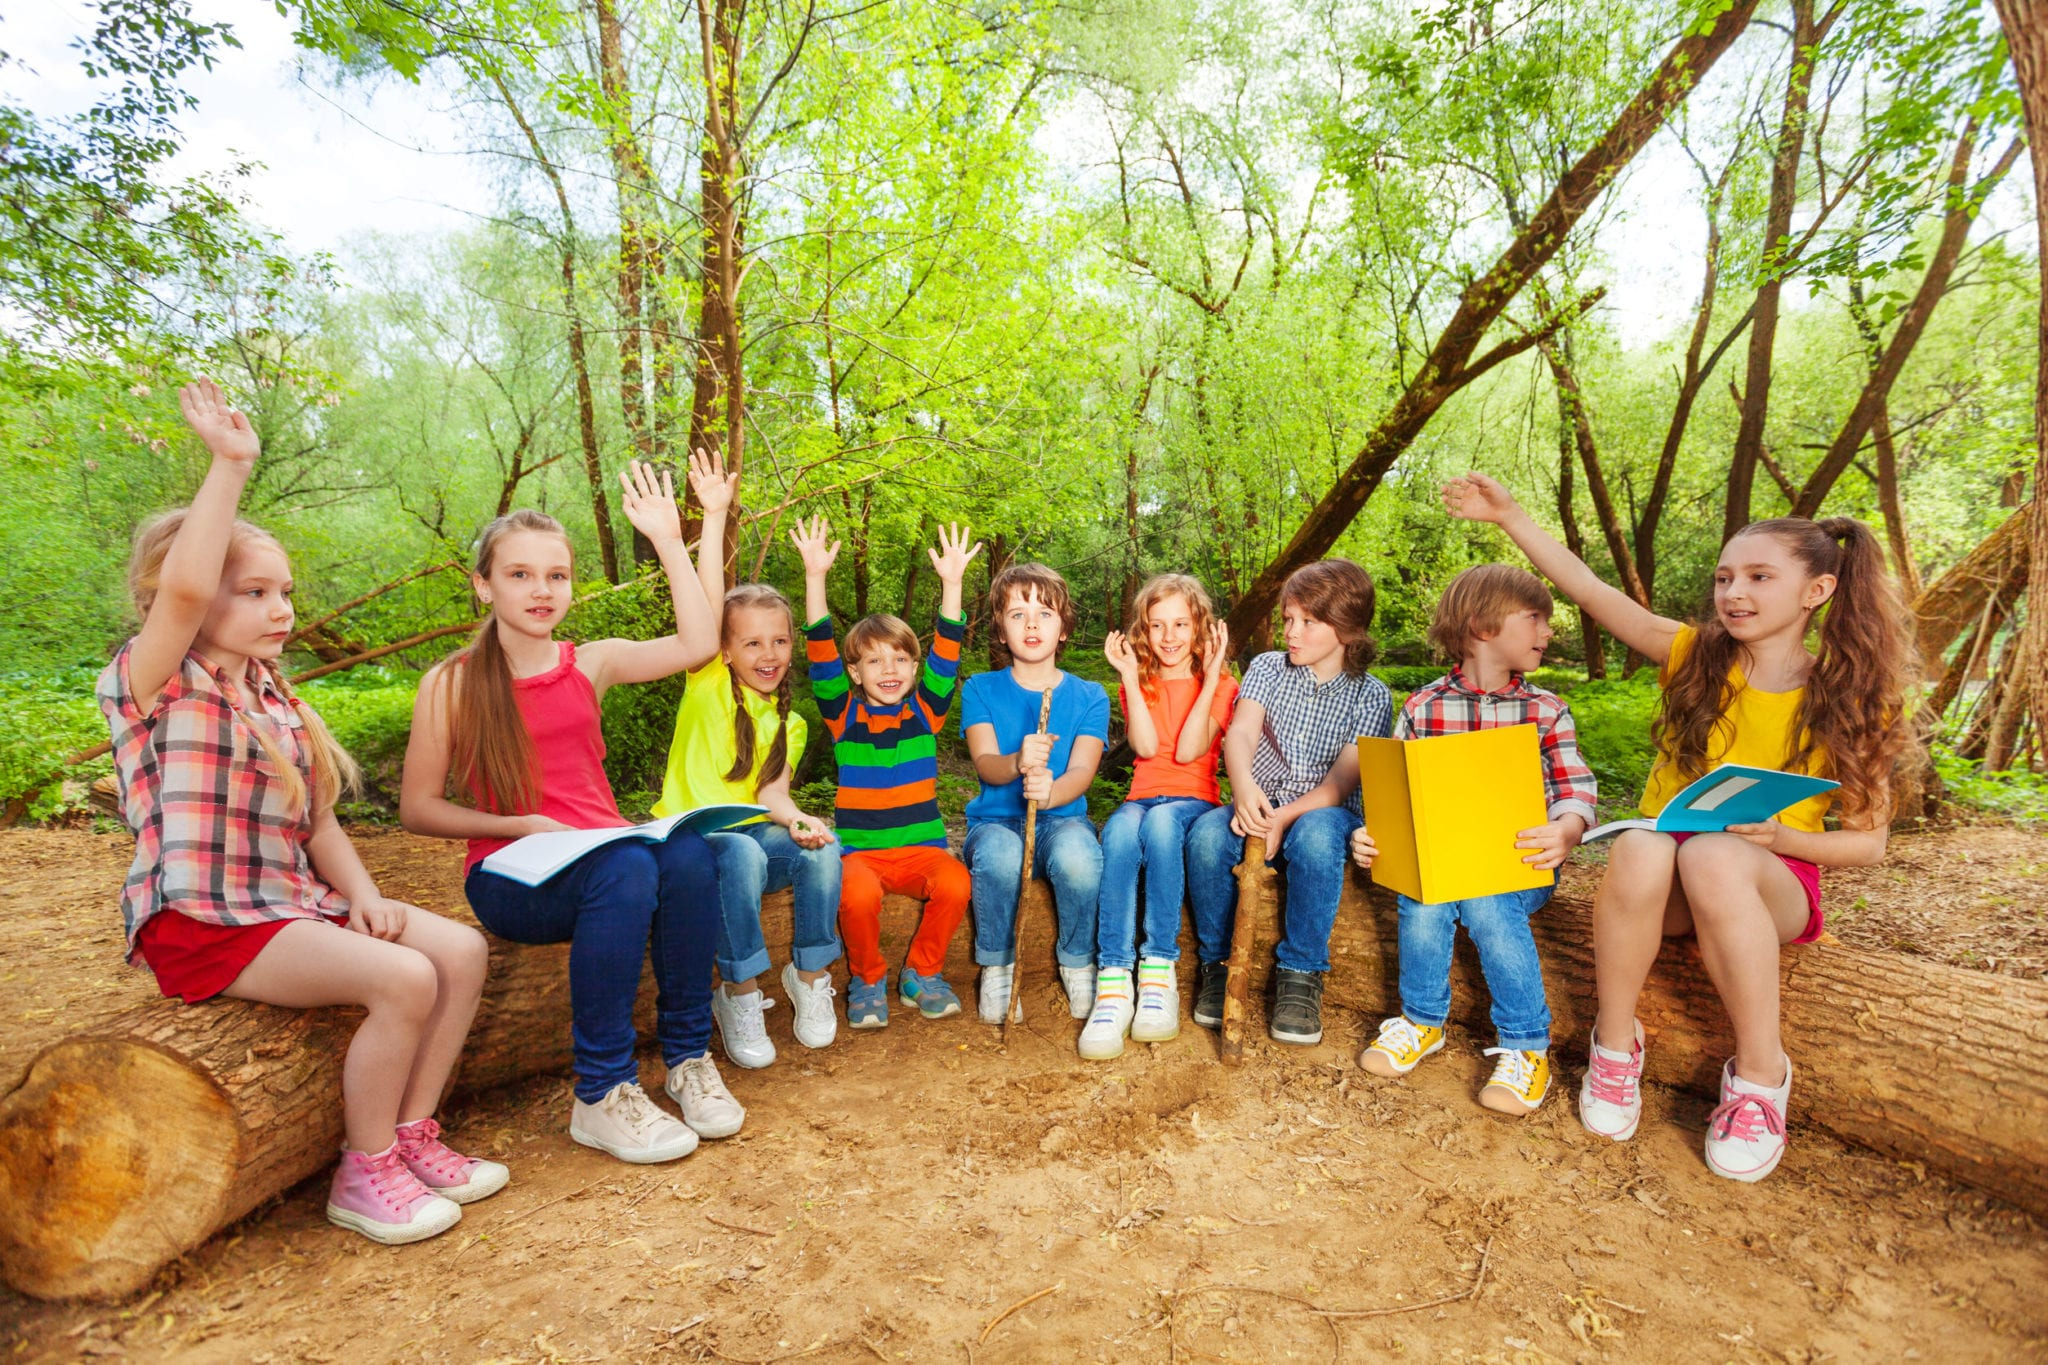 Texas Summer Camp Checklist: How to Protect Your Kid